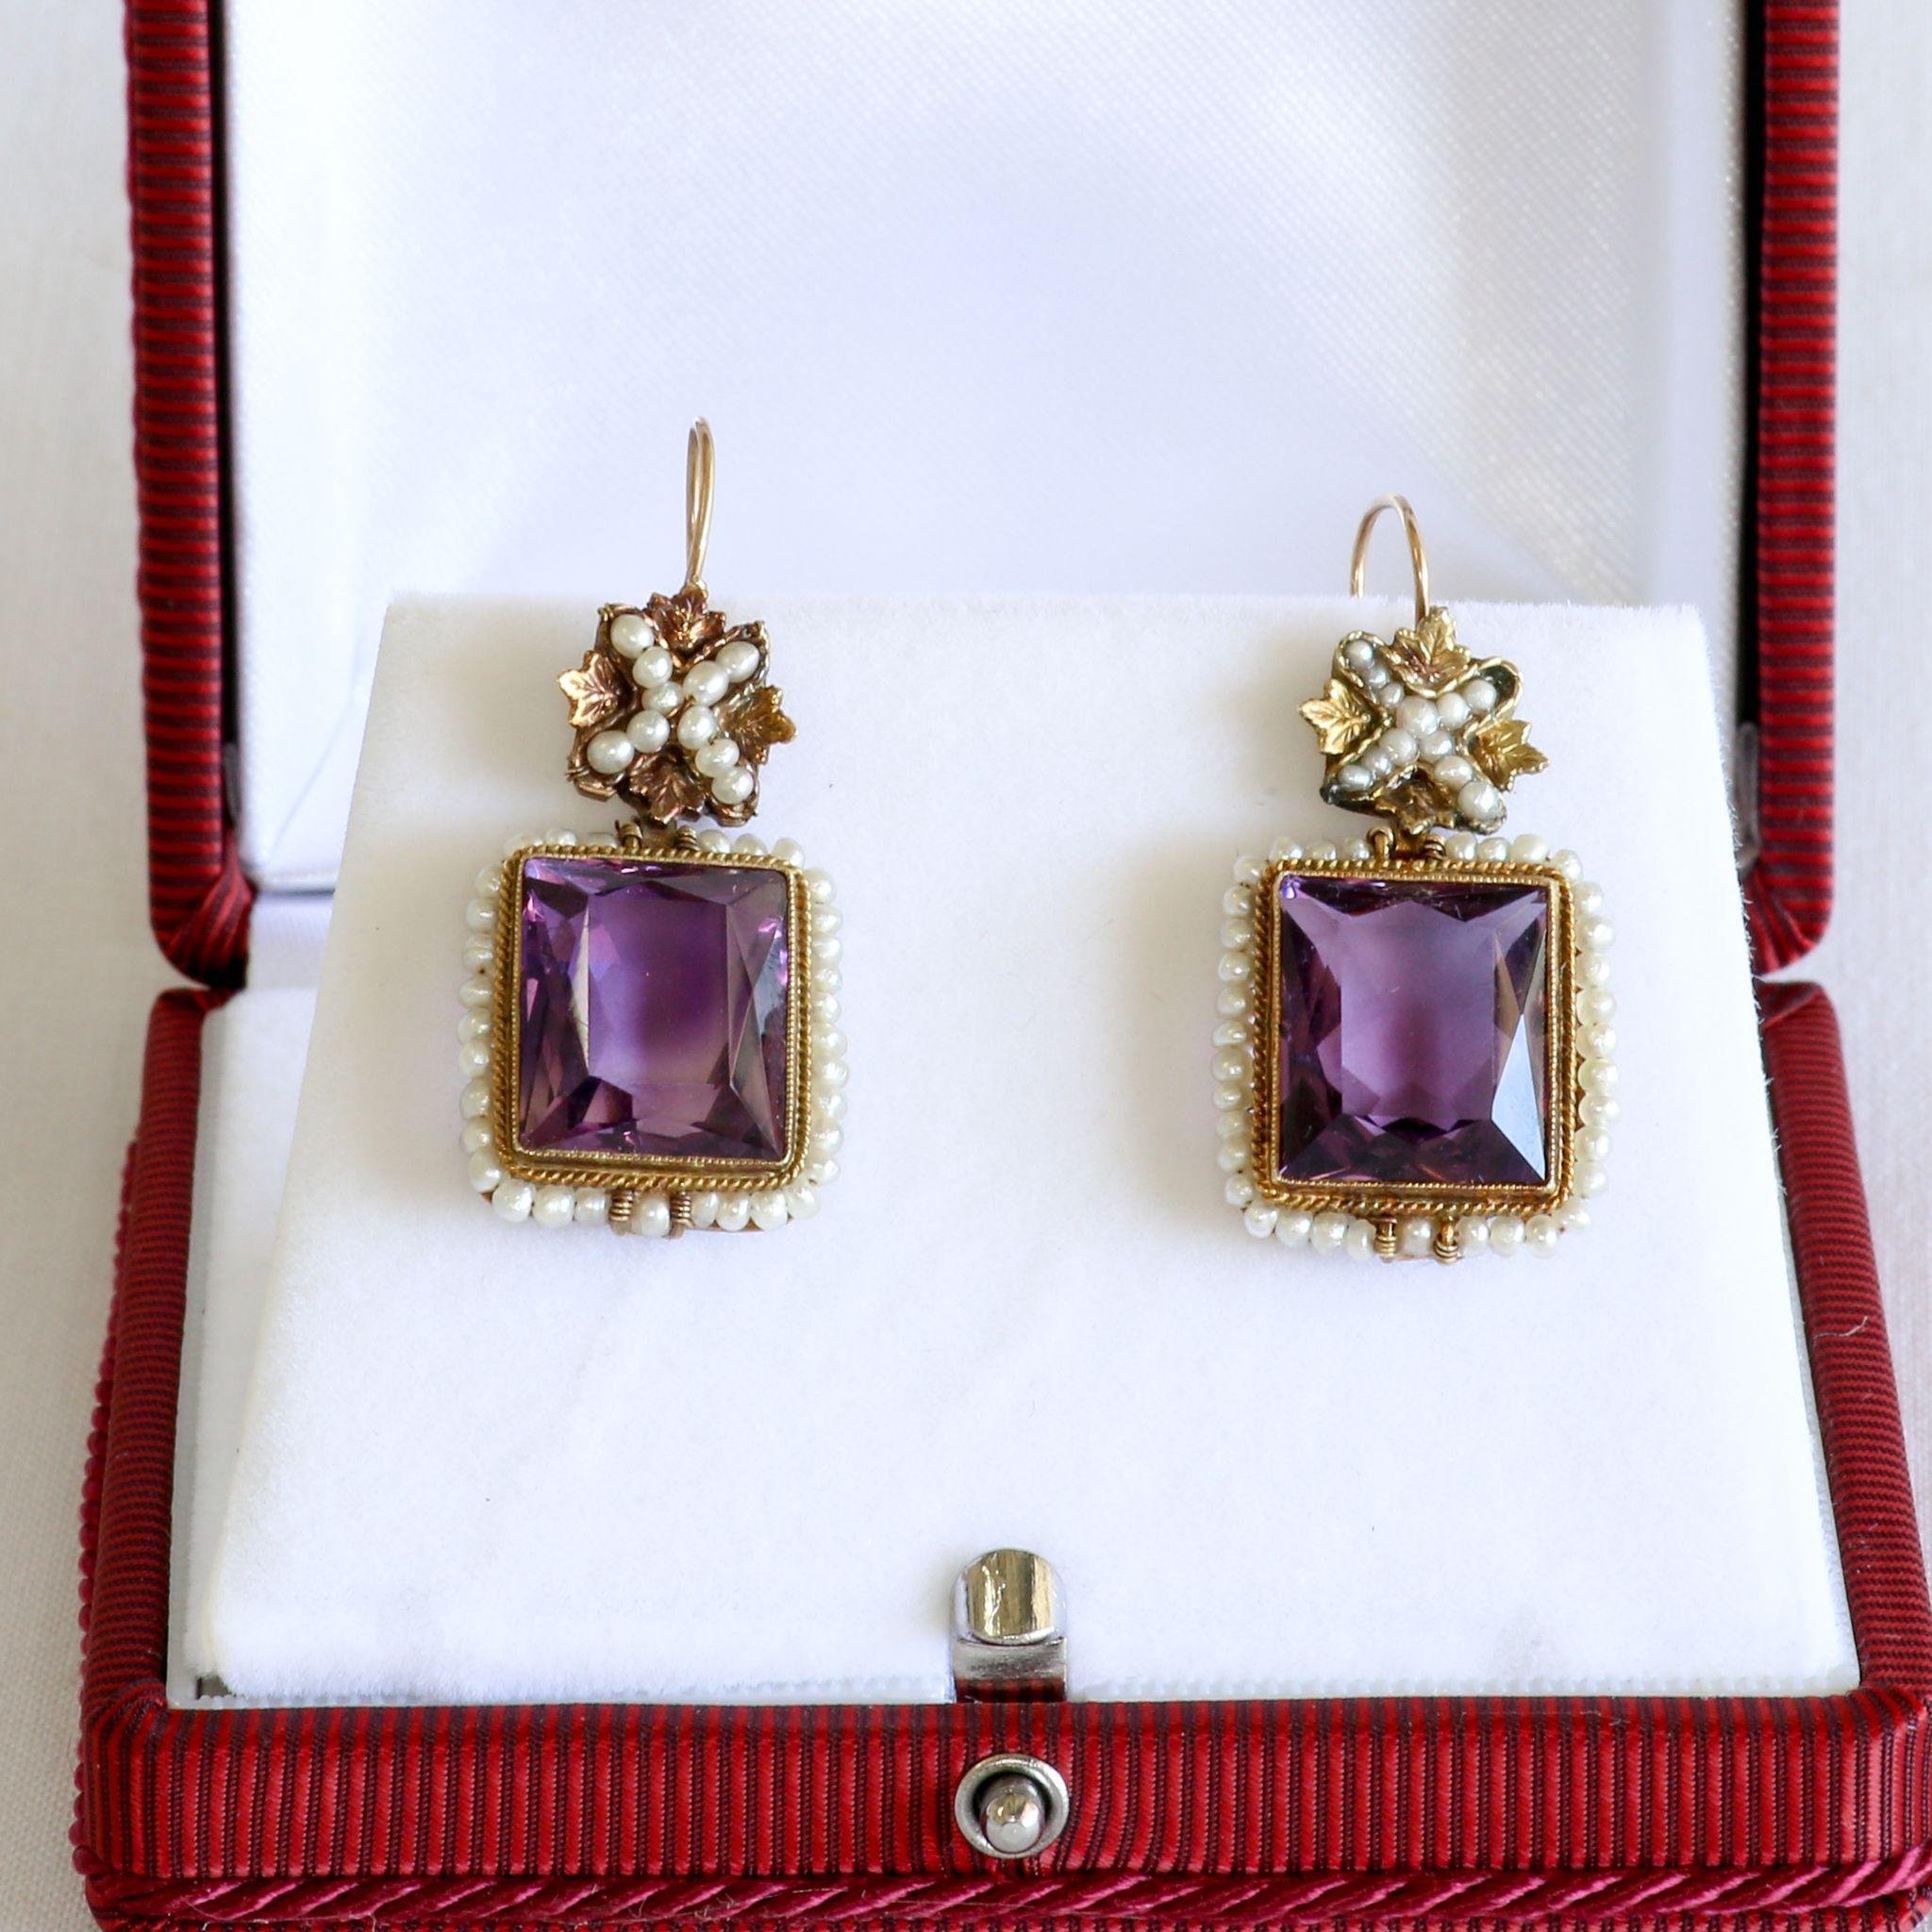 Circa 1890 Lady's 14K Amethyst & Seed Pearl Earrings